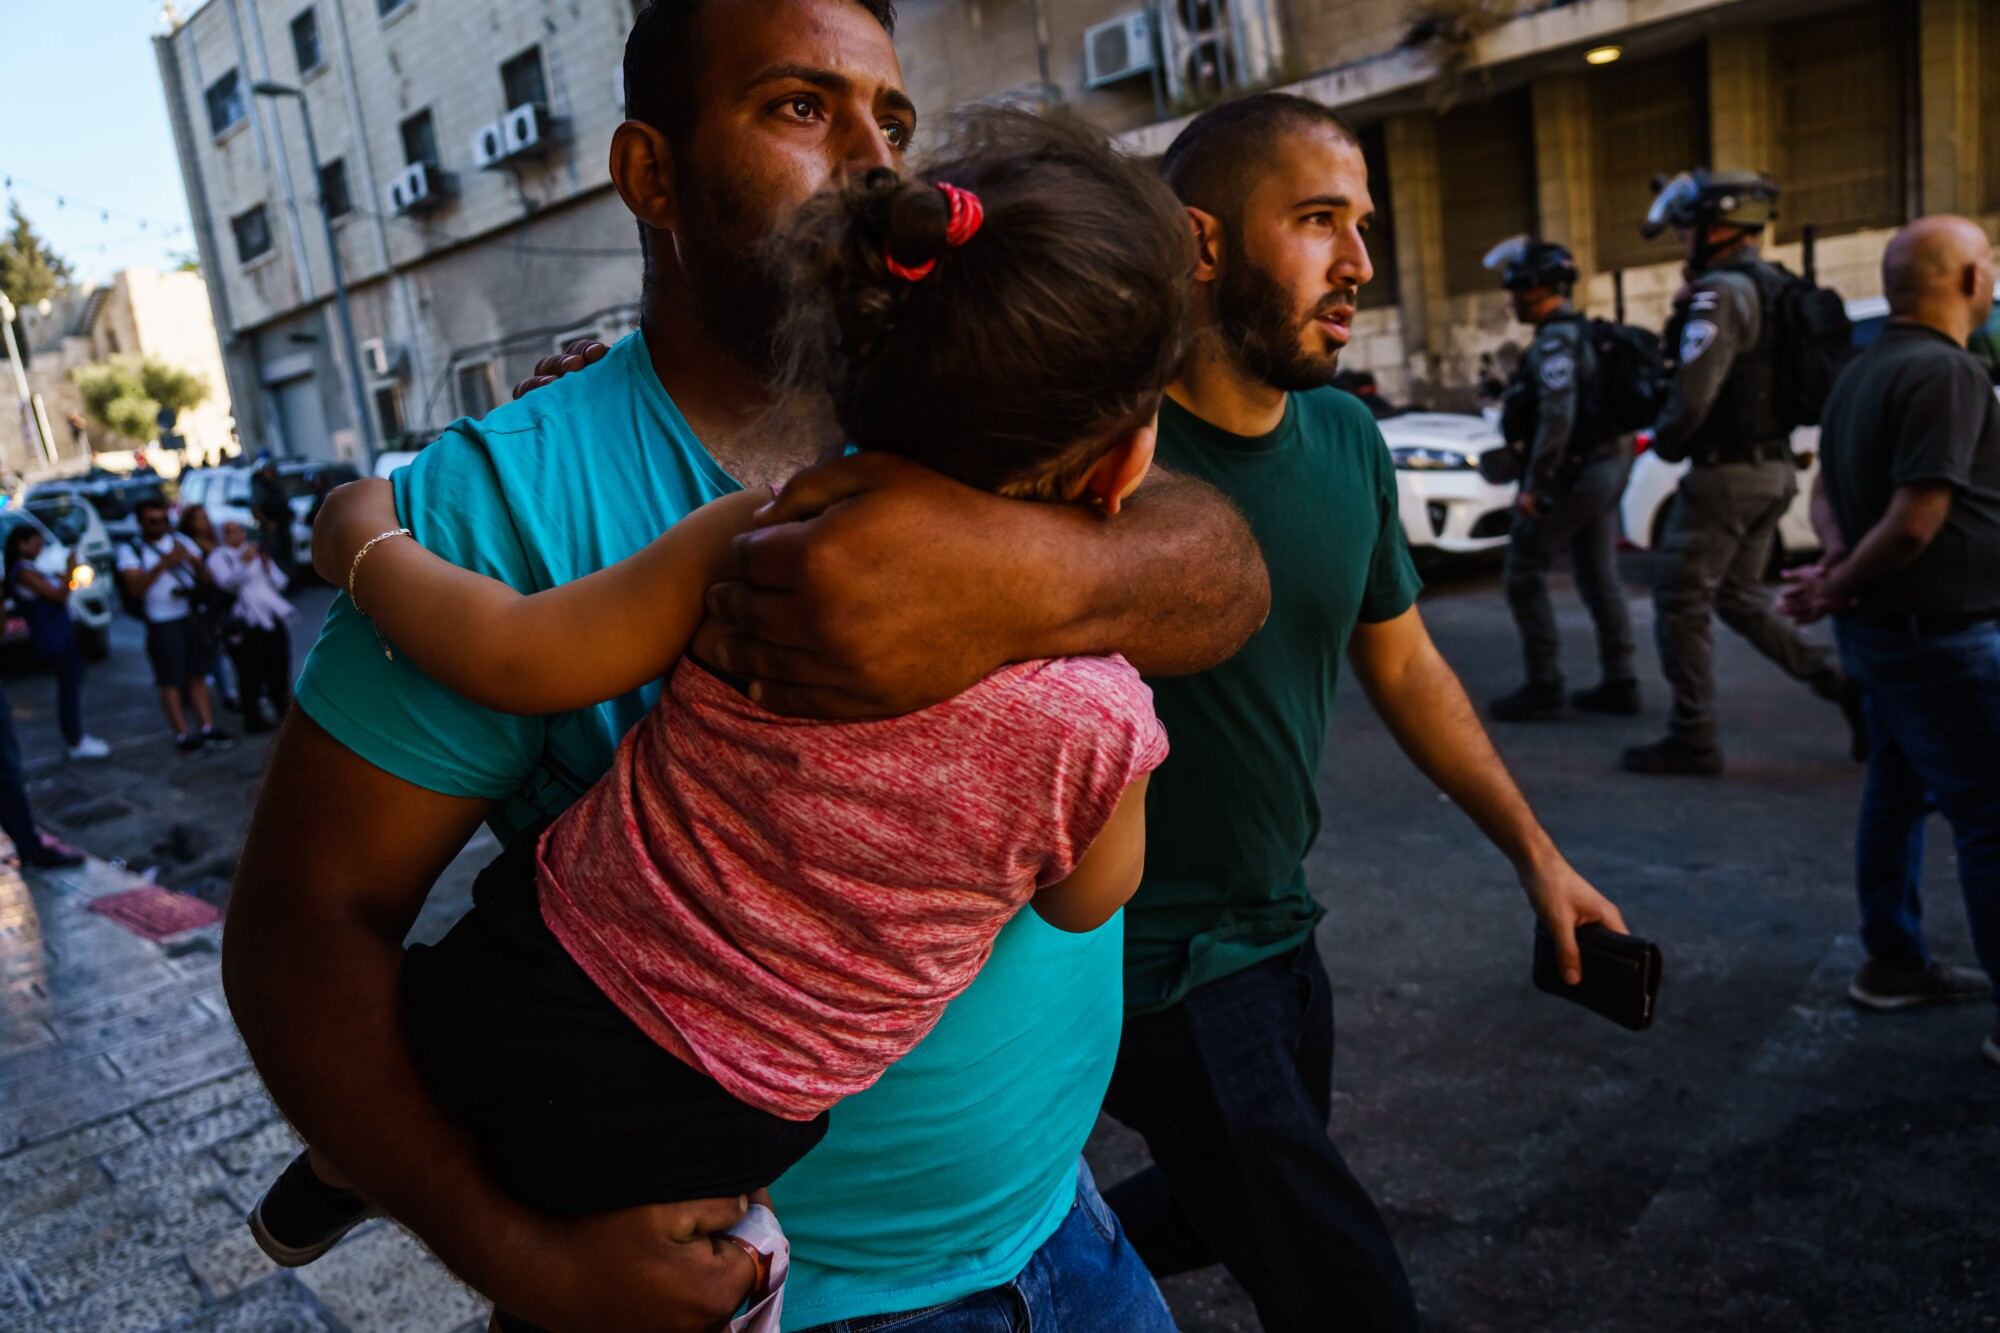 A man carries a child in his arms